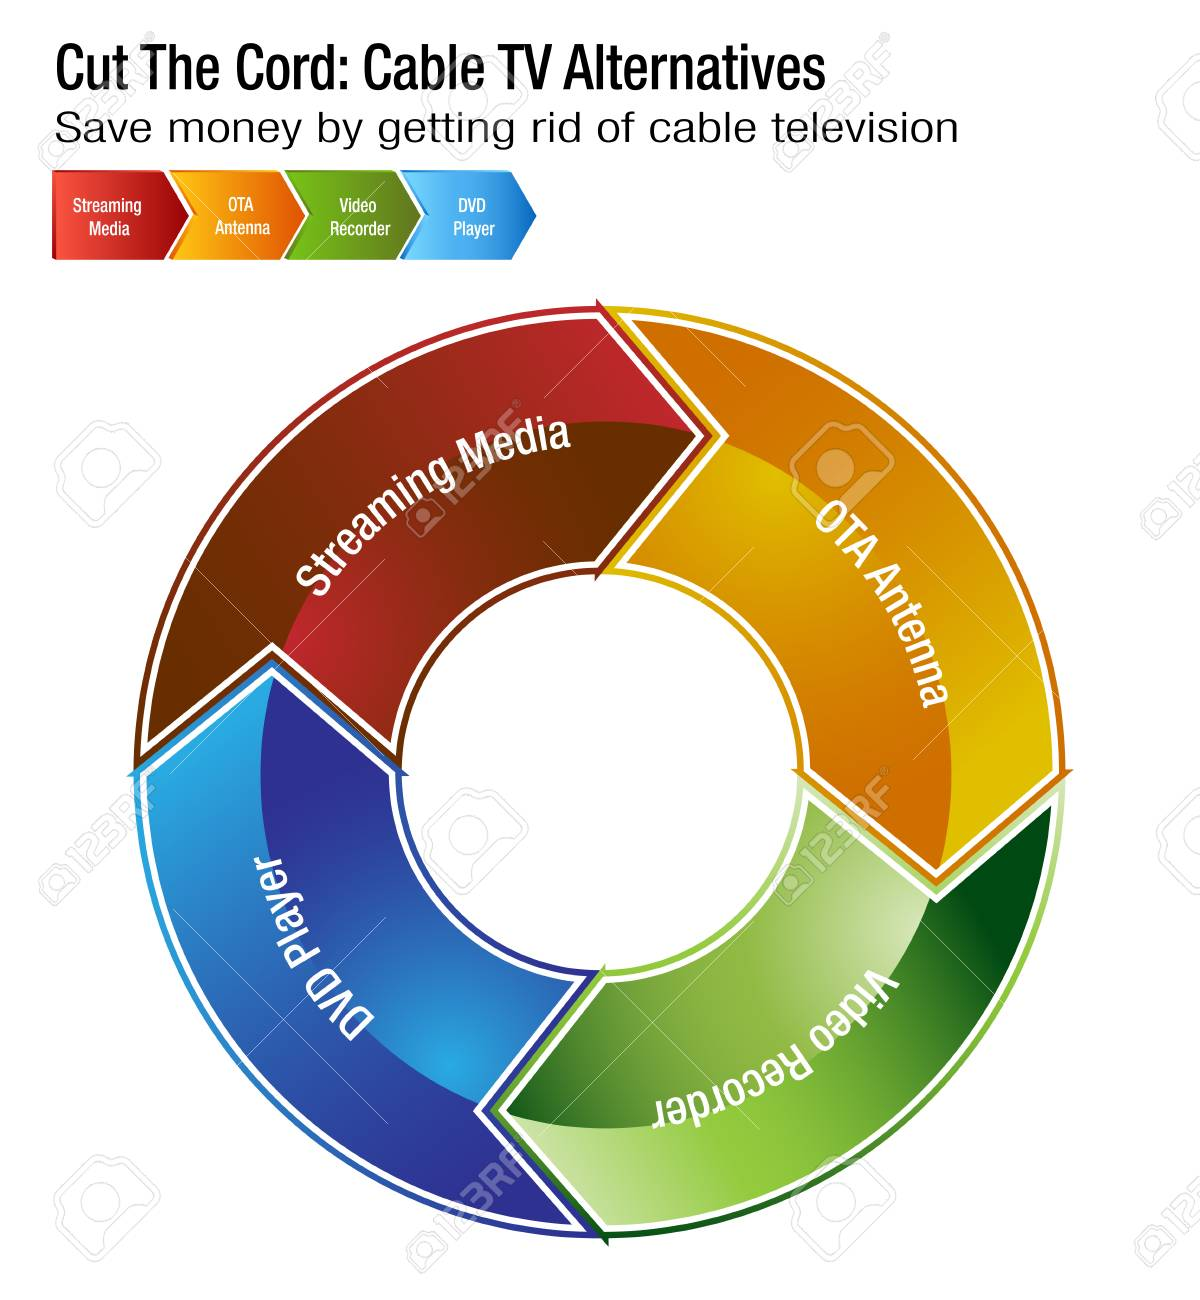 An Image Of A Cut The Cord Cable Tv Alternatives Chart Royalty Free Diagram Stock Vector 97528135